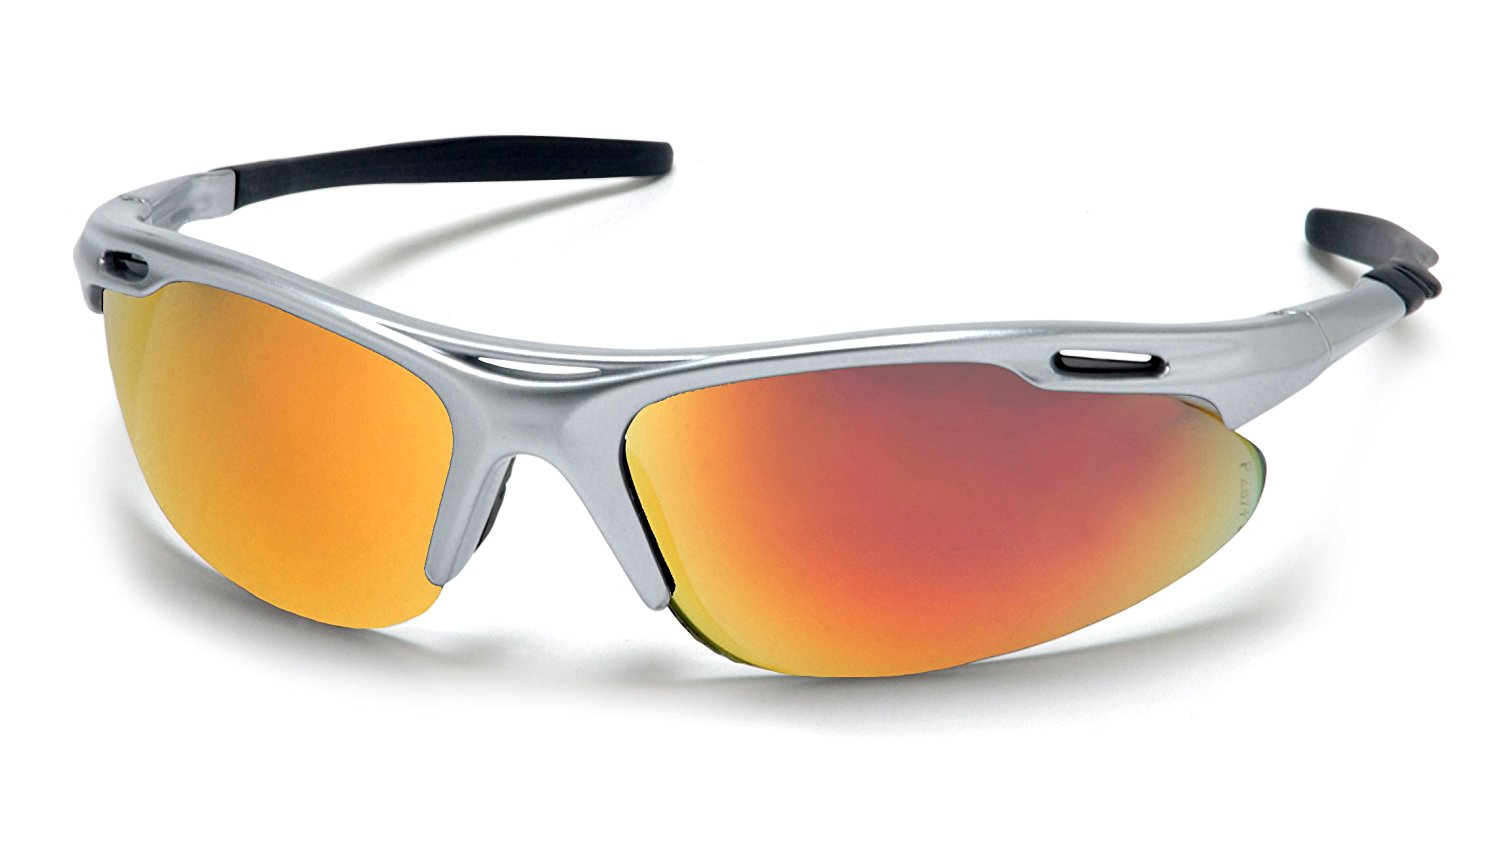 Pyramex Avante Safety Eyewear - Anti-Scratch, 99% Protection Against Harmful UV Rays – 20 Lens and Frame Color Combinations